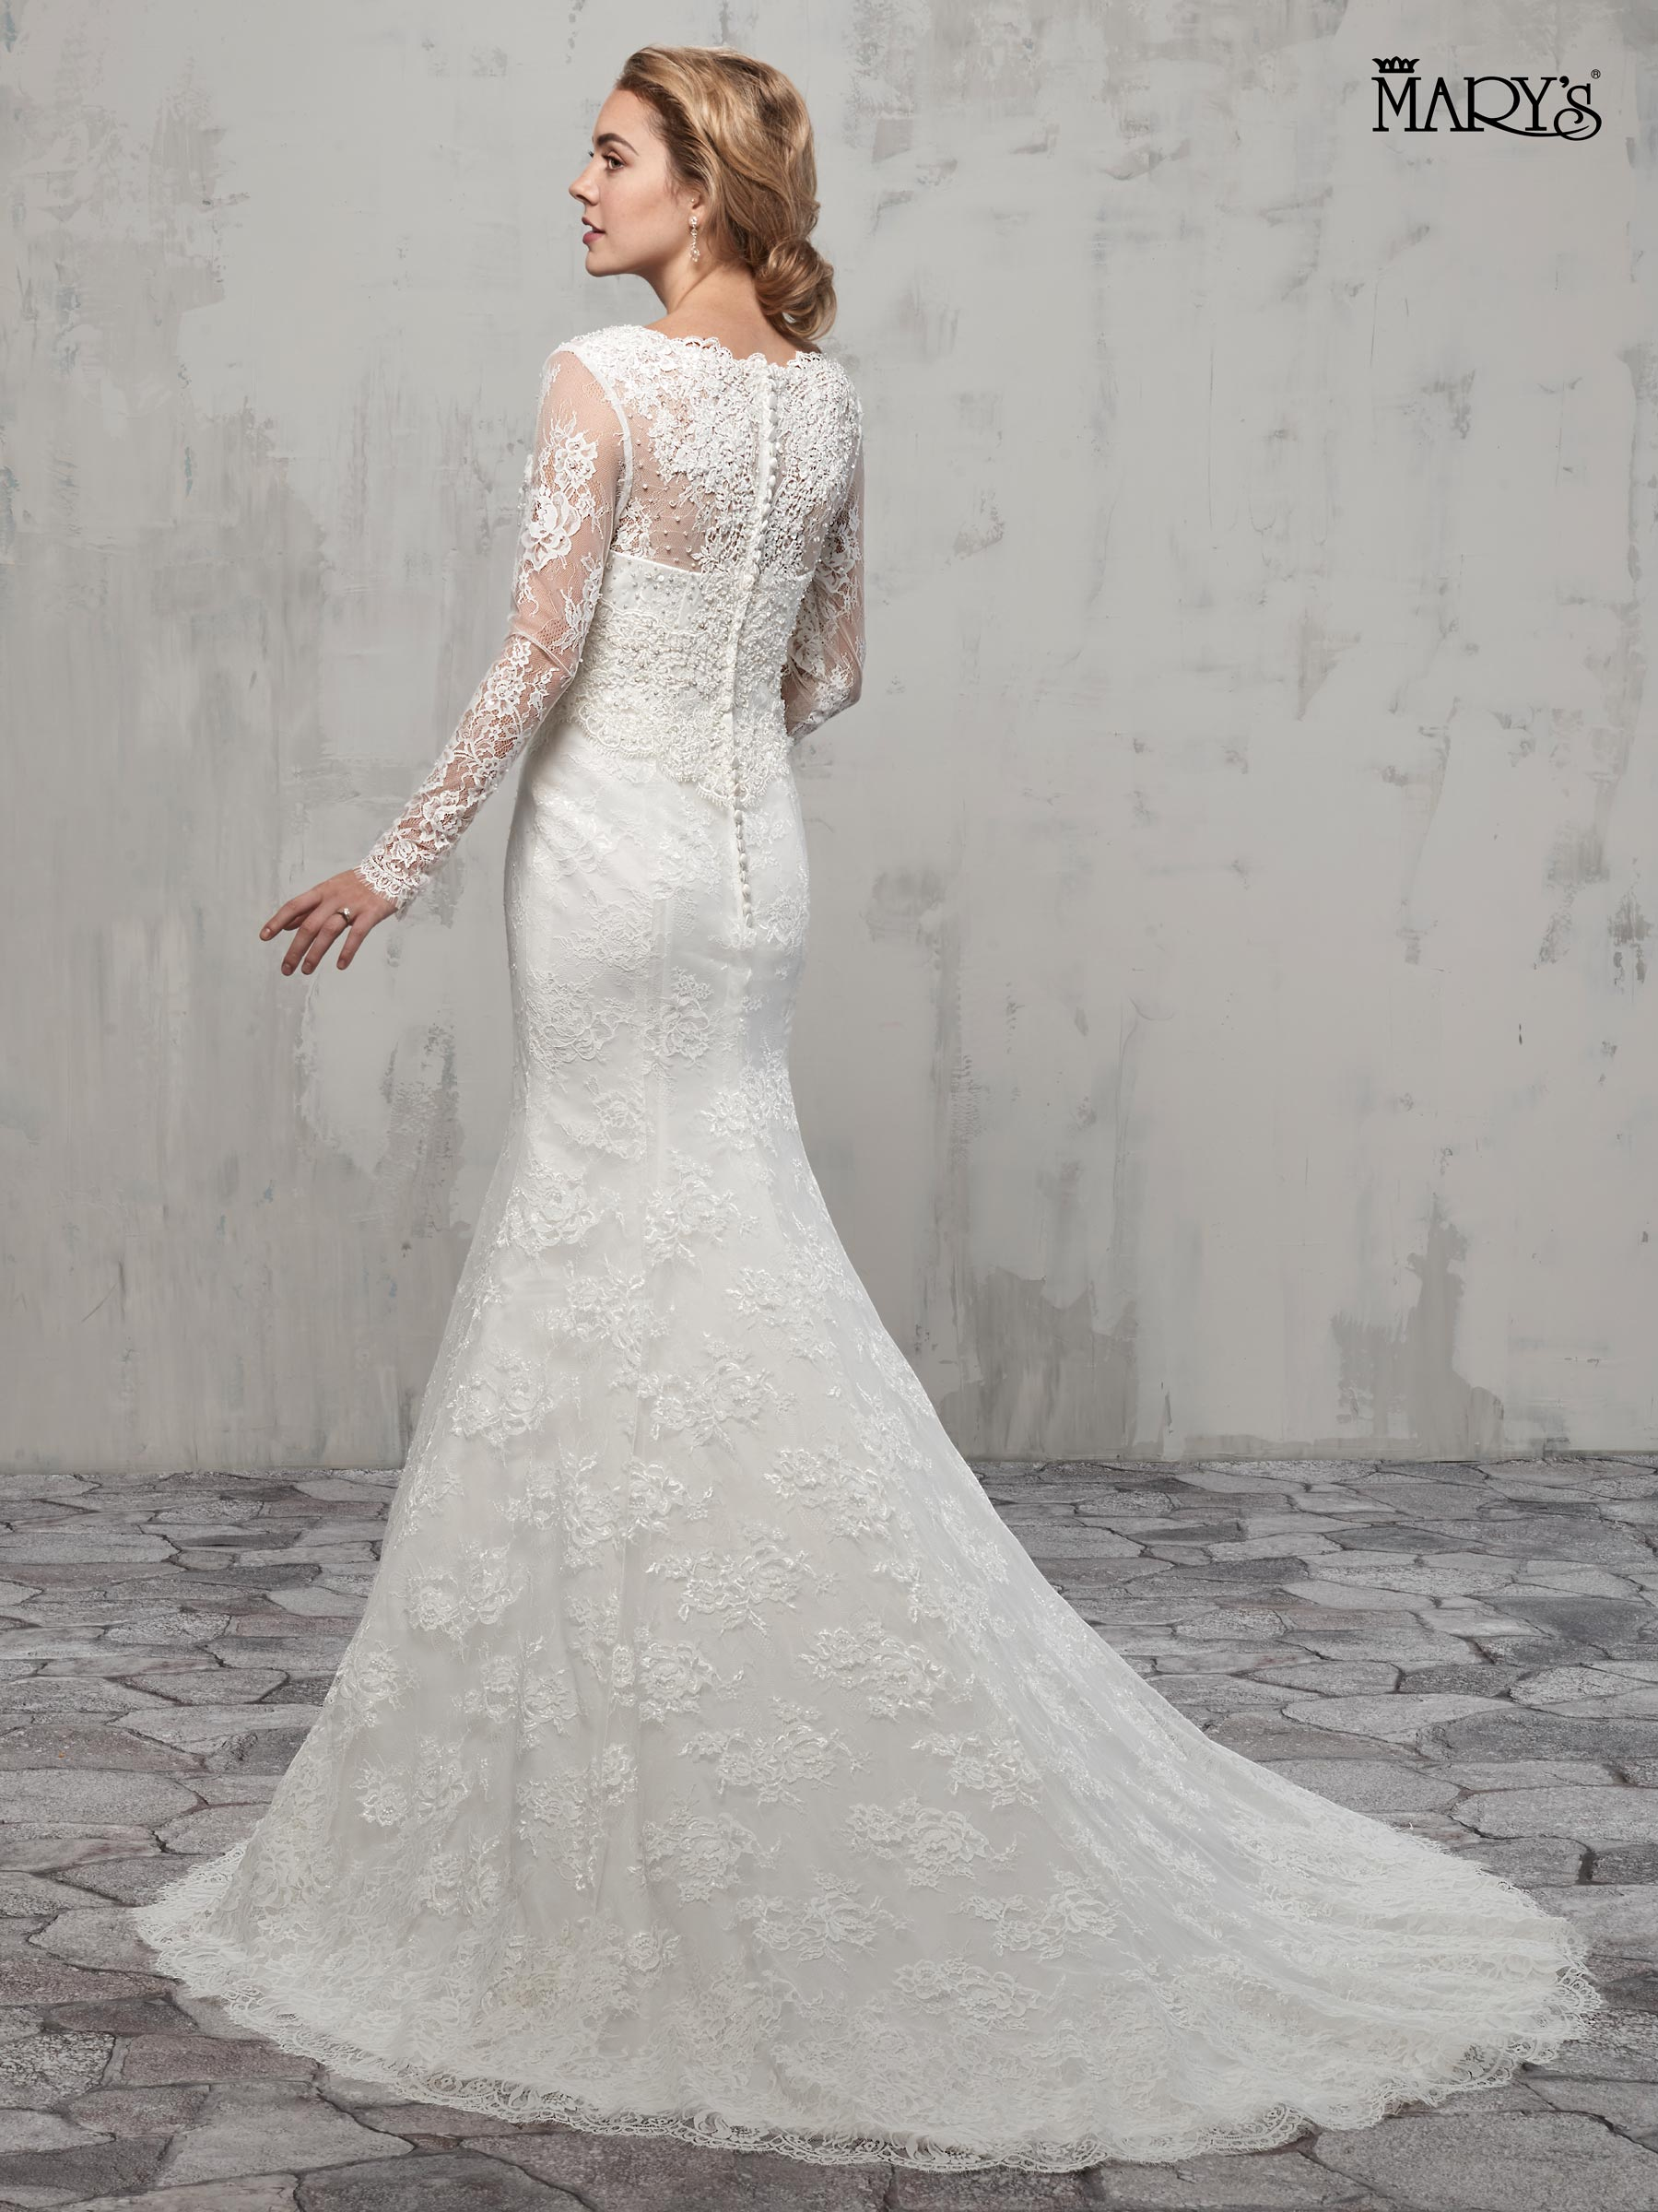 Bridal Wedding Dresses | Mary's | Style - MB3014